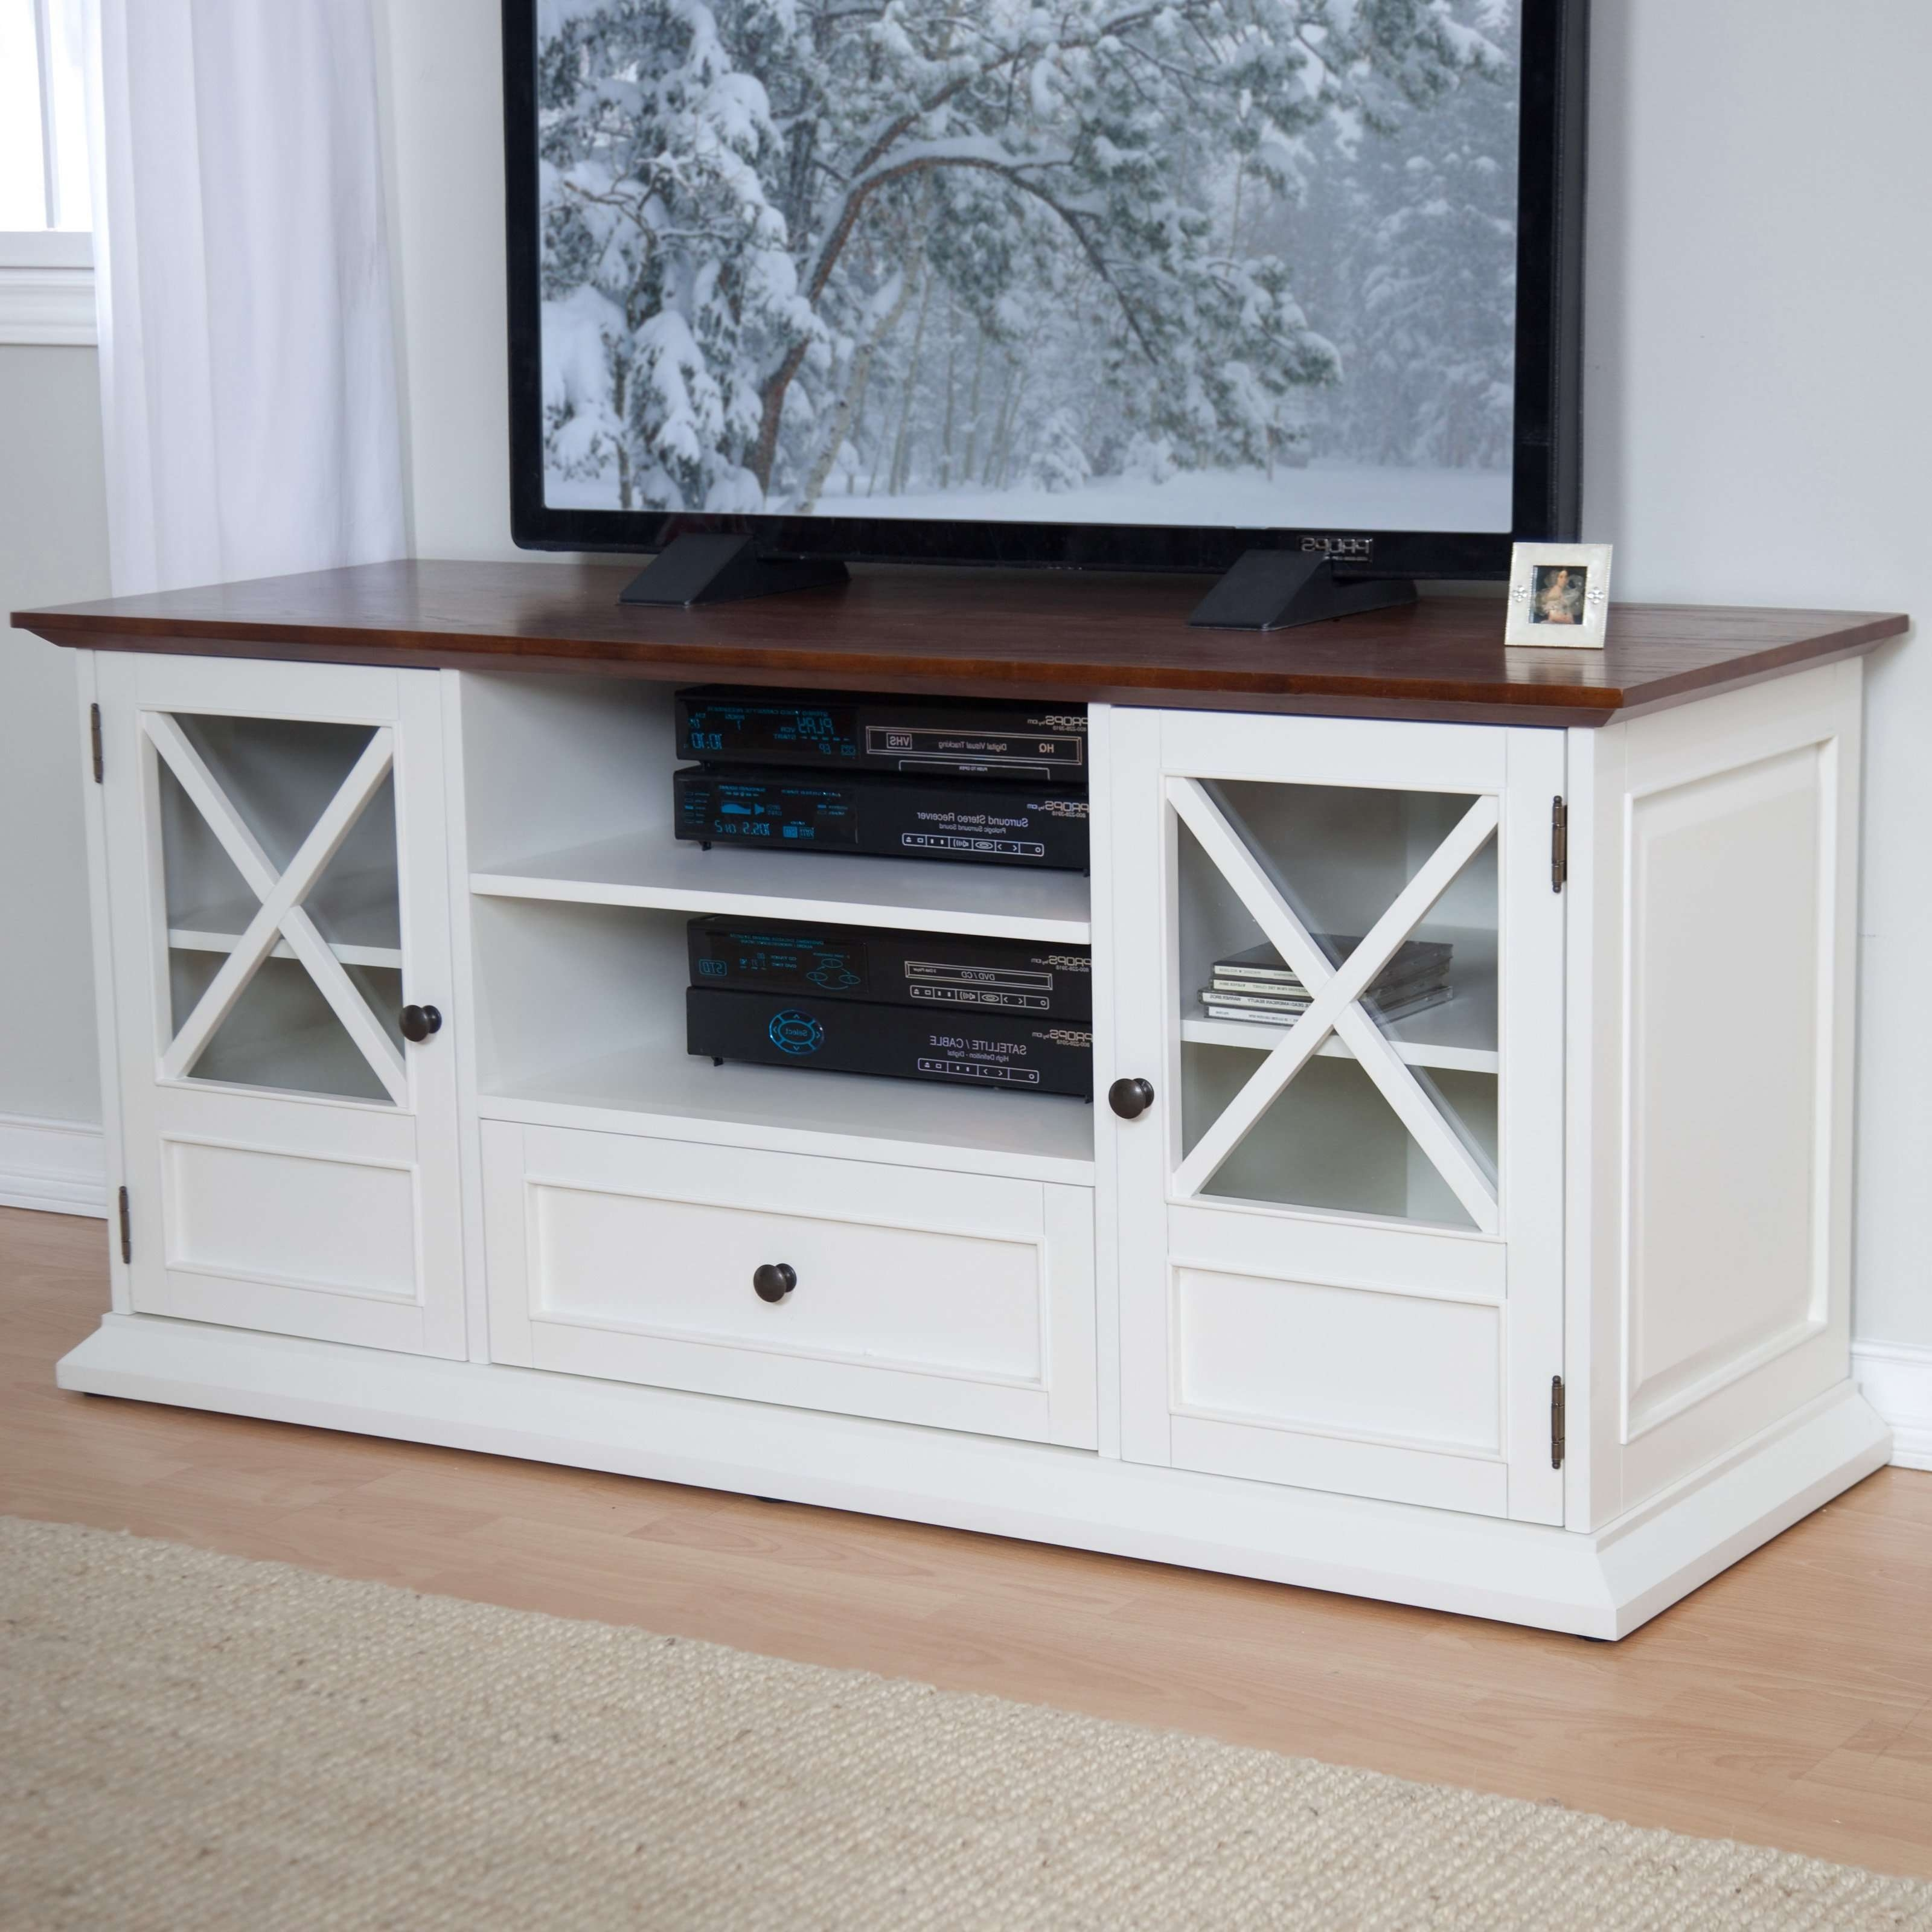 Belham Living Hampton Tv Stand – White/oak | Hayneedle Throughout White Wood Tv Stands (View 2 of 15)